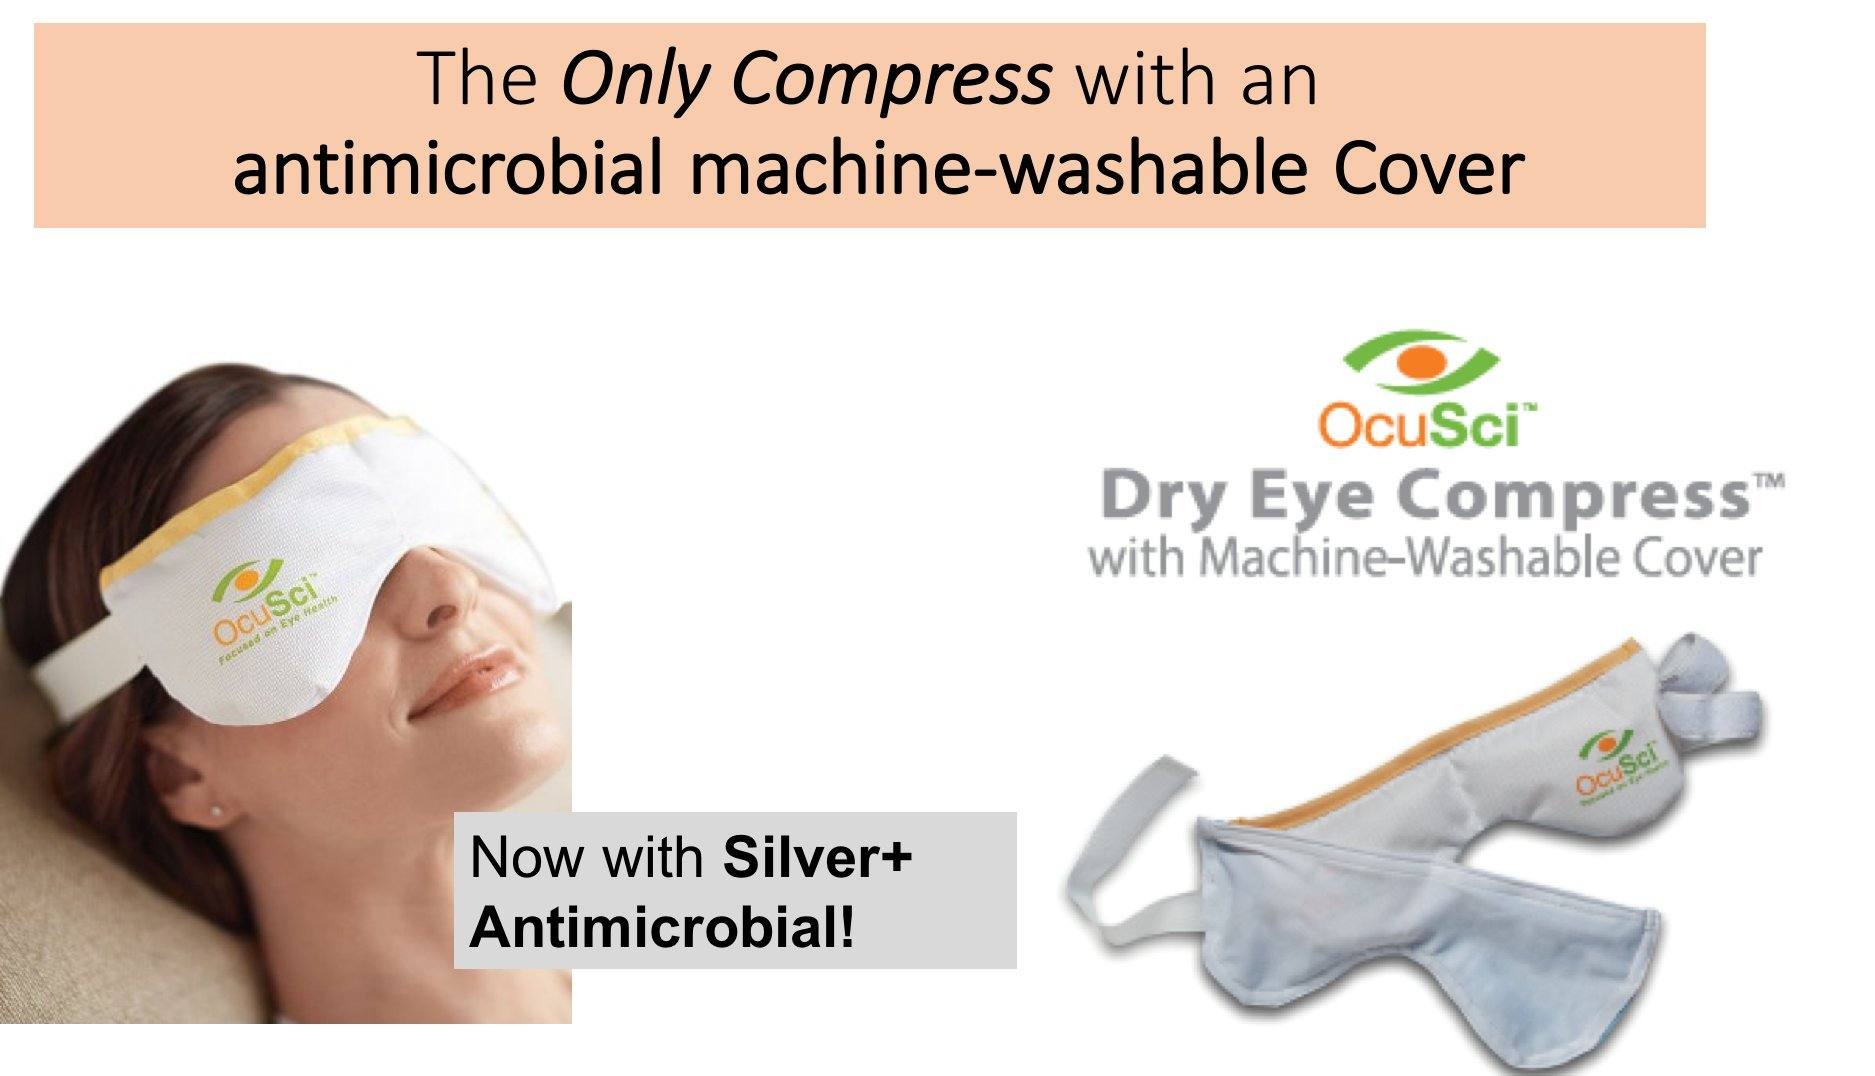 Dry Eye Compress With HydroHeat Machine Washable Cover, Save 40%, Microwave for Moist Heat Therapy or Freeze for Cold Therapy to Treat: Dry Eye Syndrome, TMJ, Sinus Pressure, Stress. by Solana Health Inc.